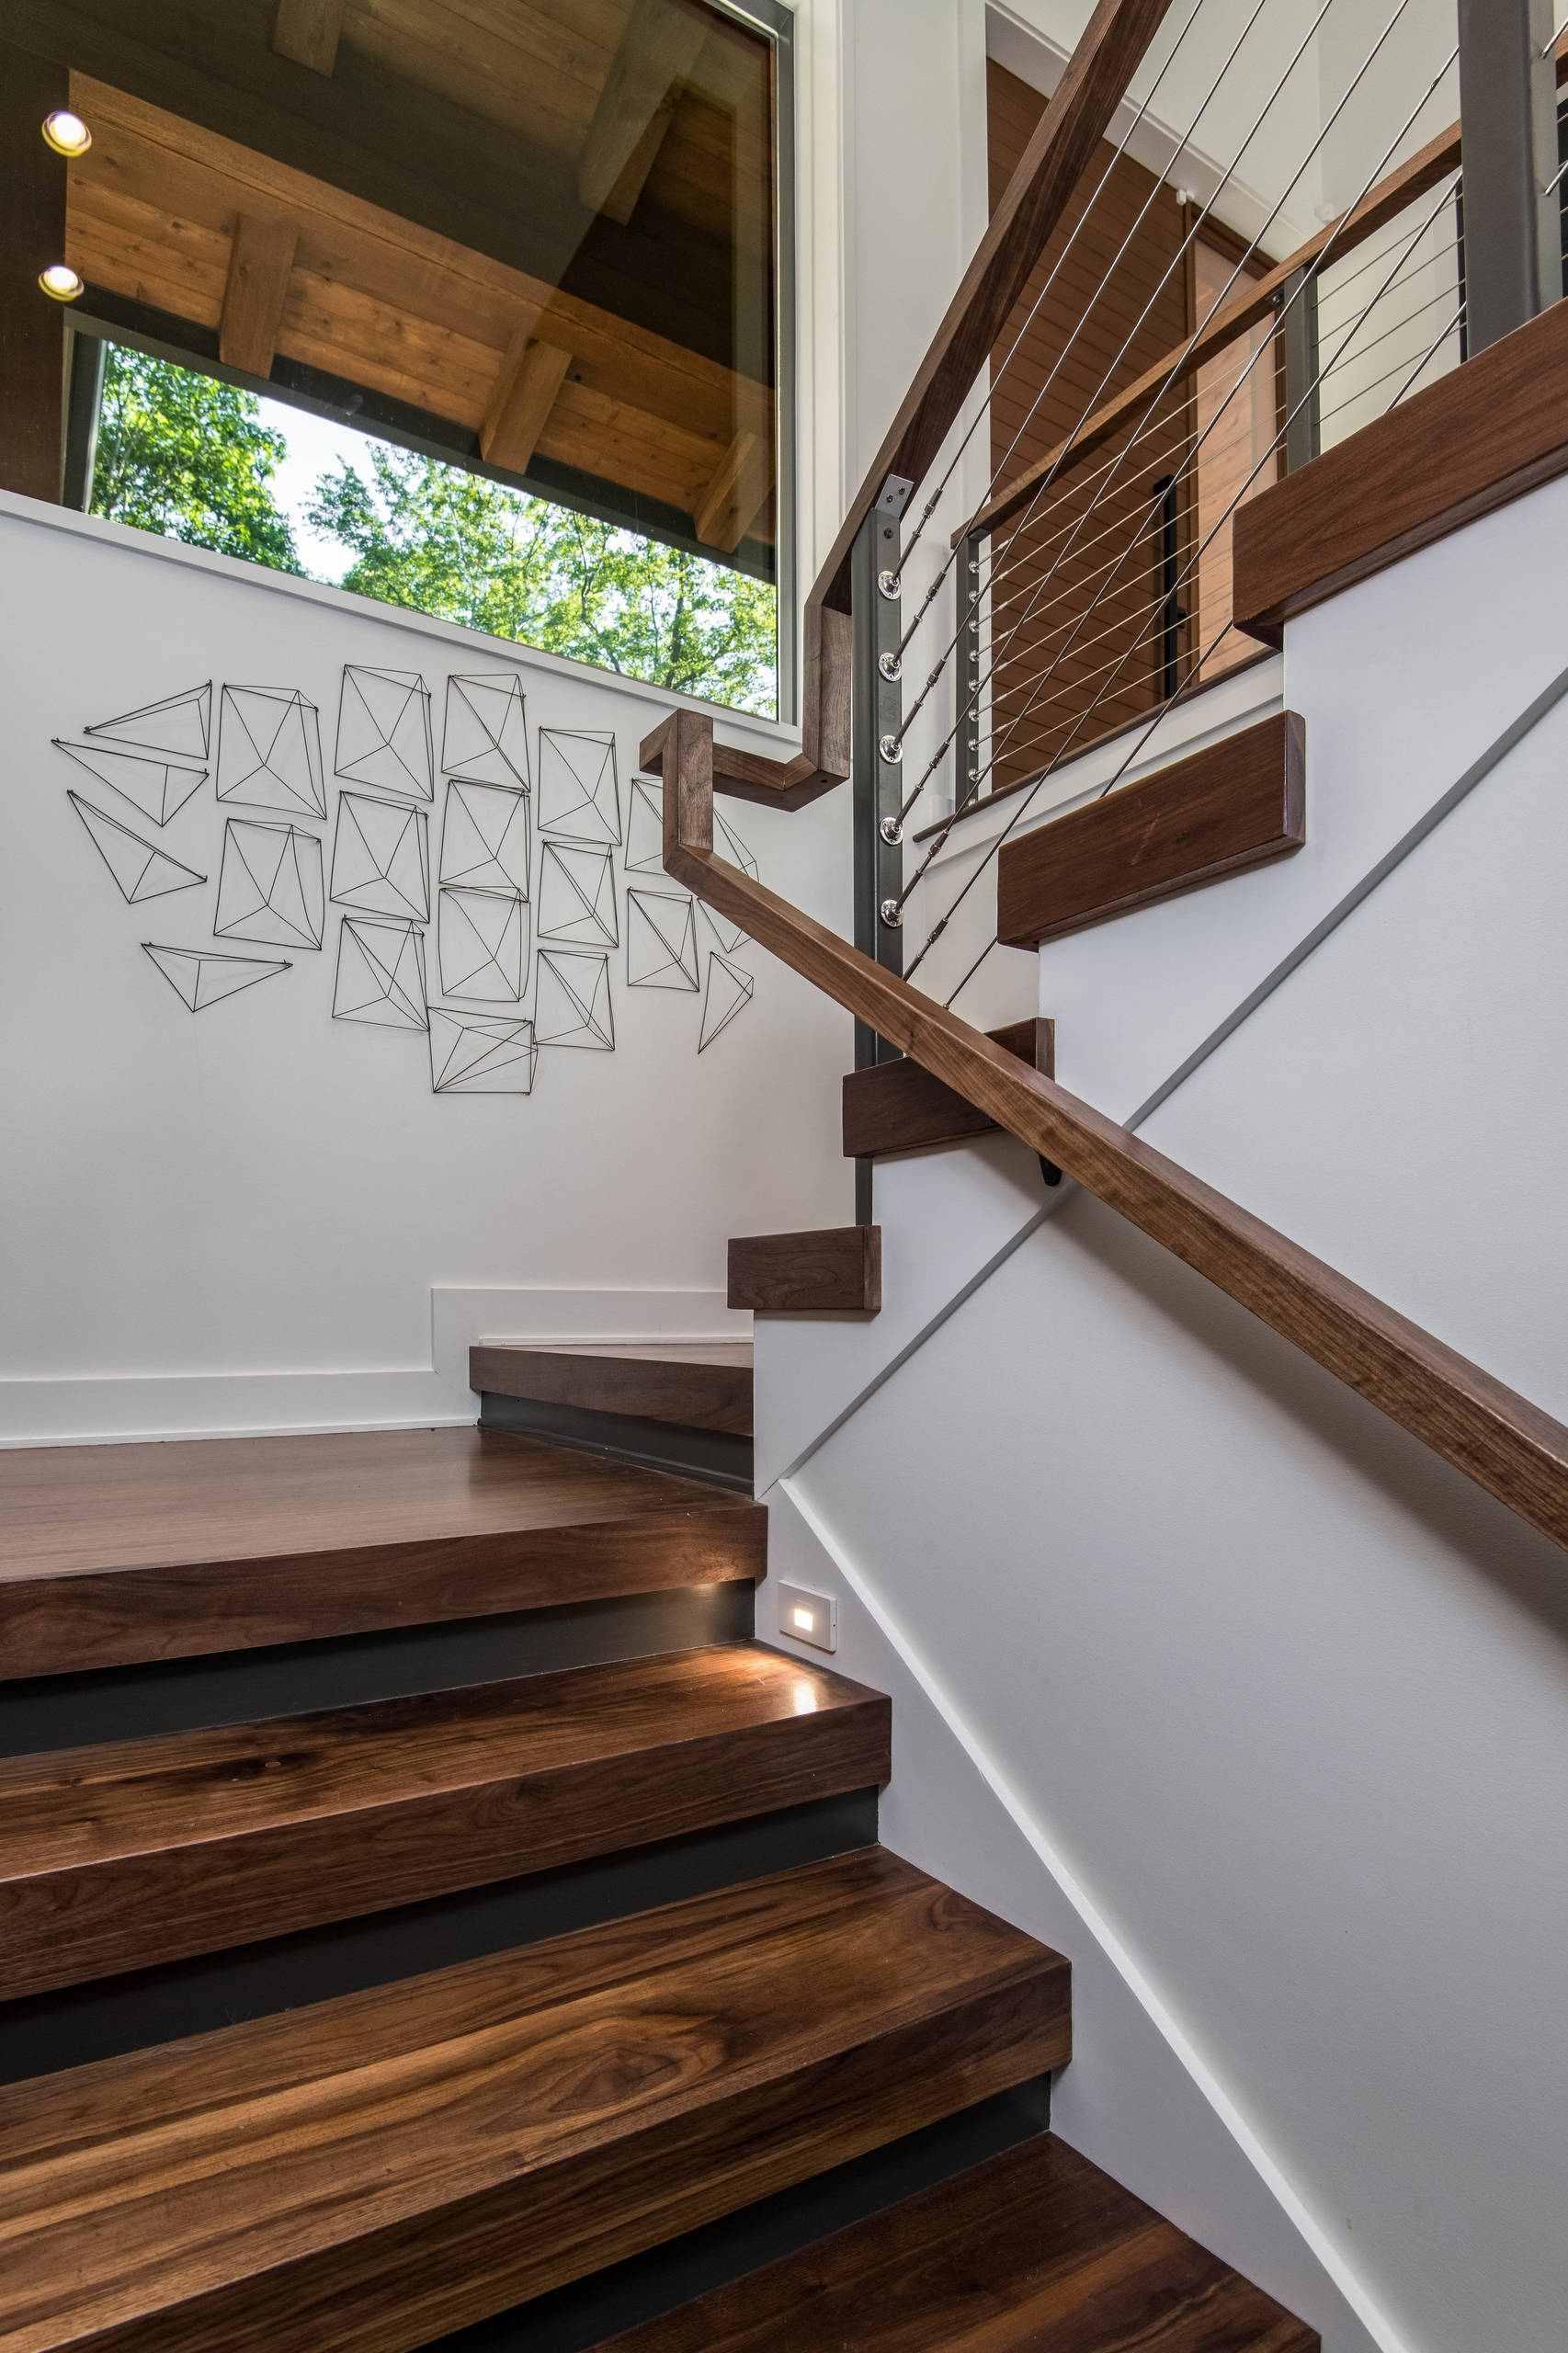 75 Beautiful Wooden Staircase Pictures Ideas September 2020 | Wooden Staircases For Sale | Cheap | Steel | Landing | House | New Model